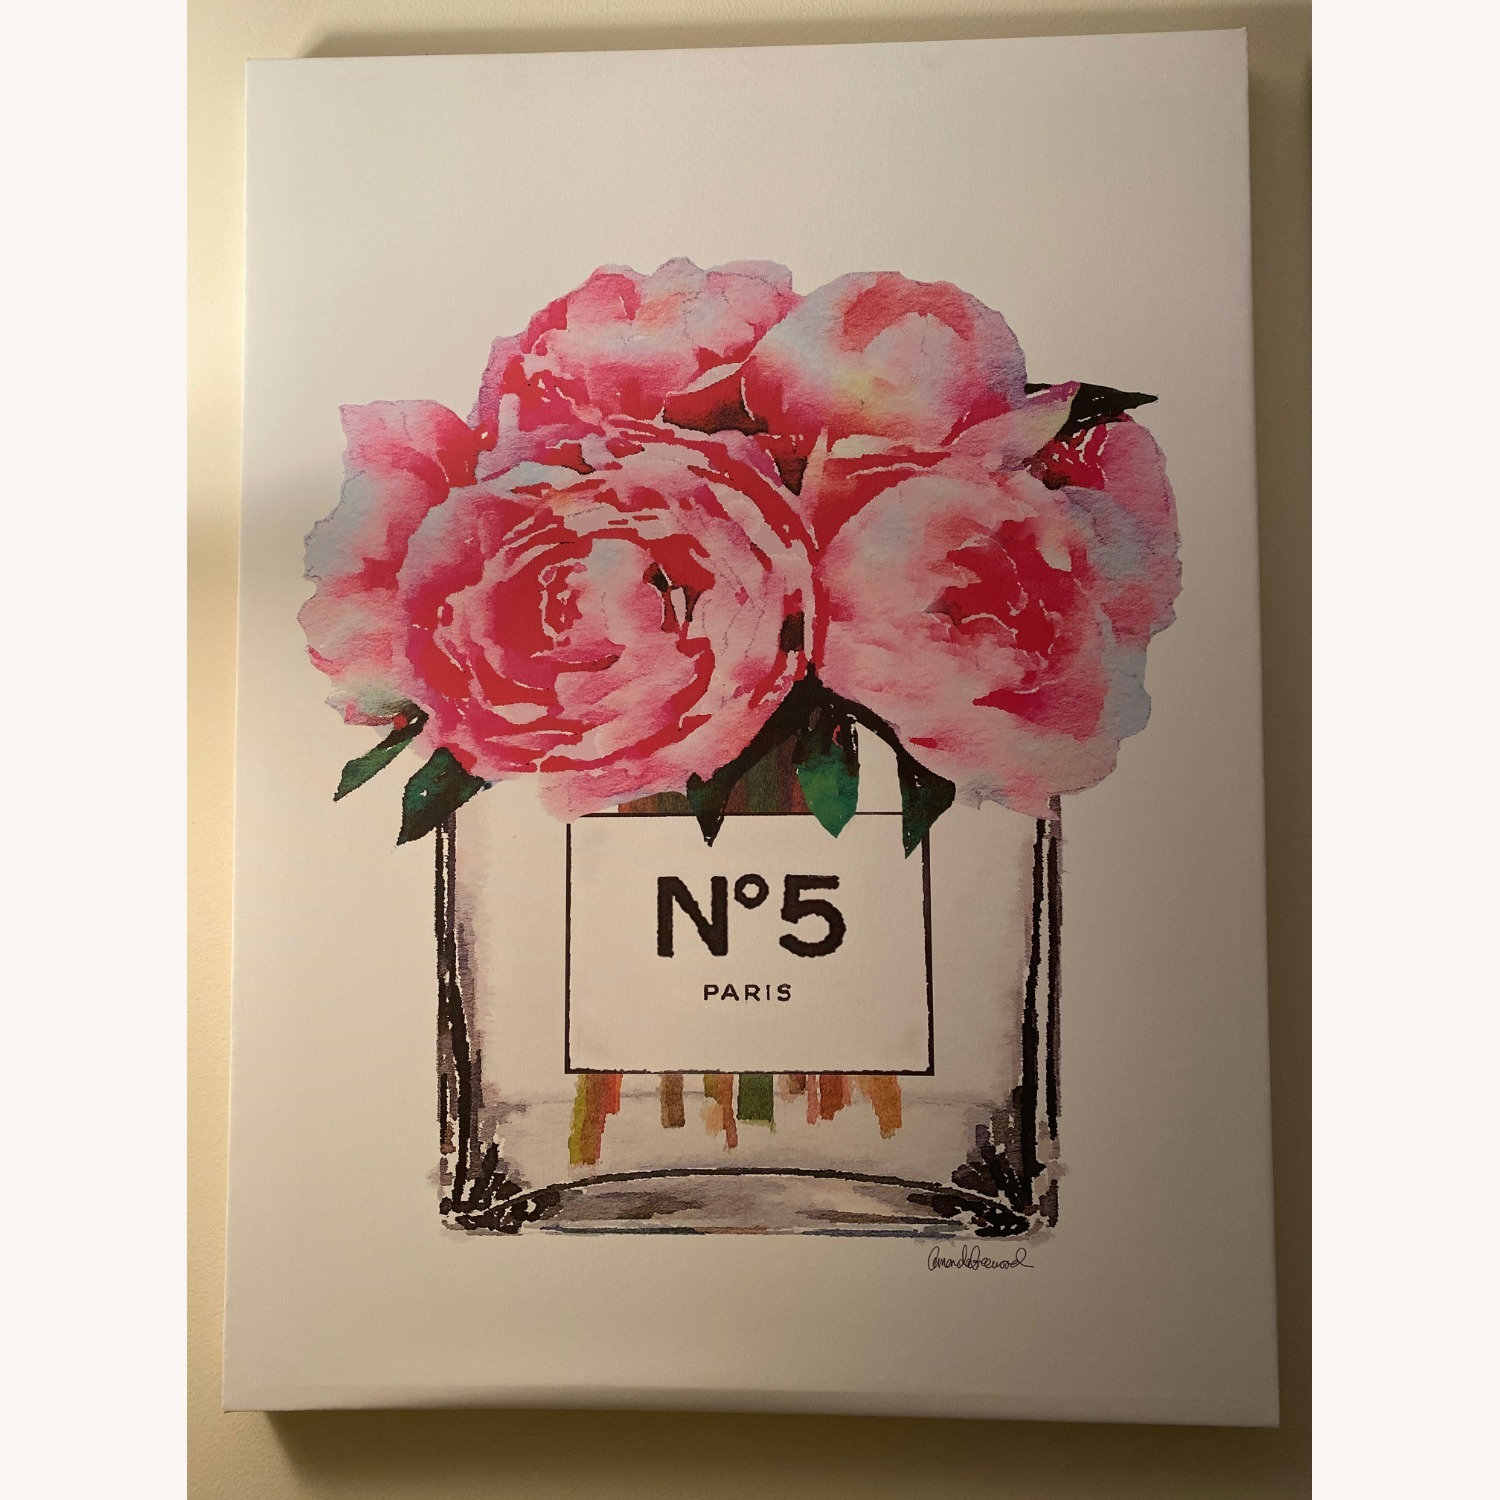 Chanel Perfume Canvas Painting - image-1